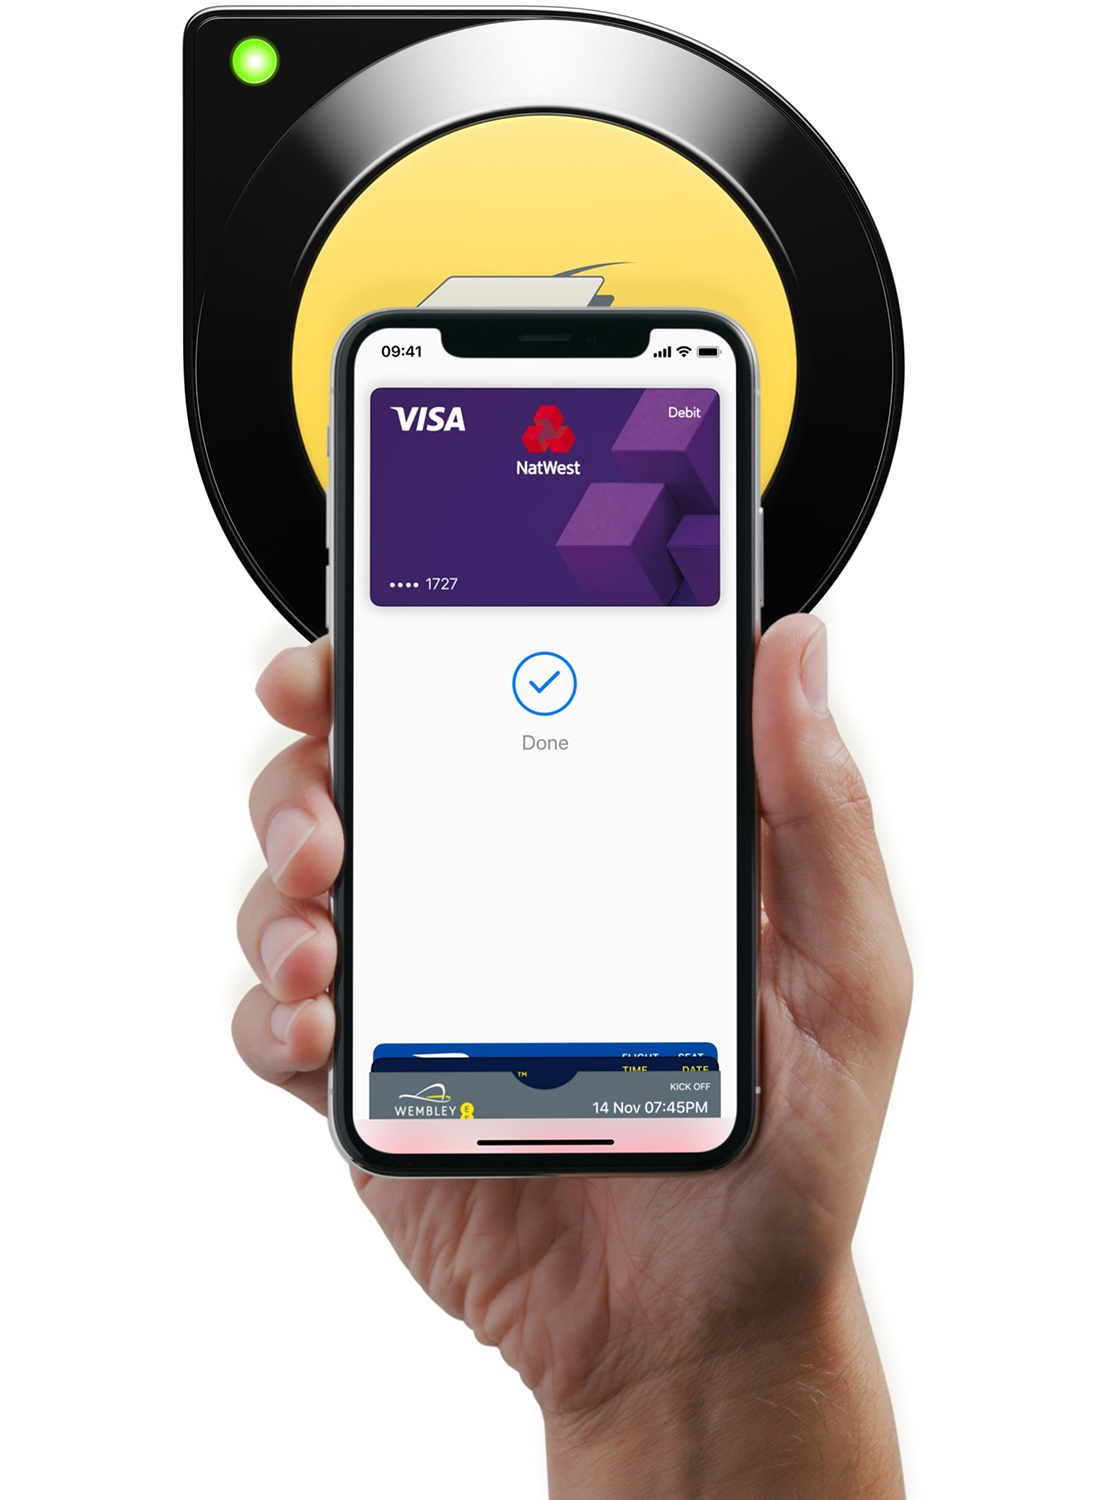 Apple Launches Express Transit in London; Mobility Service also Adds NFC Payments Feature in Apple Wallet